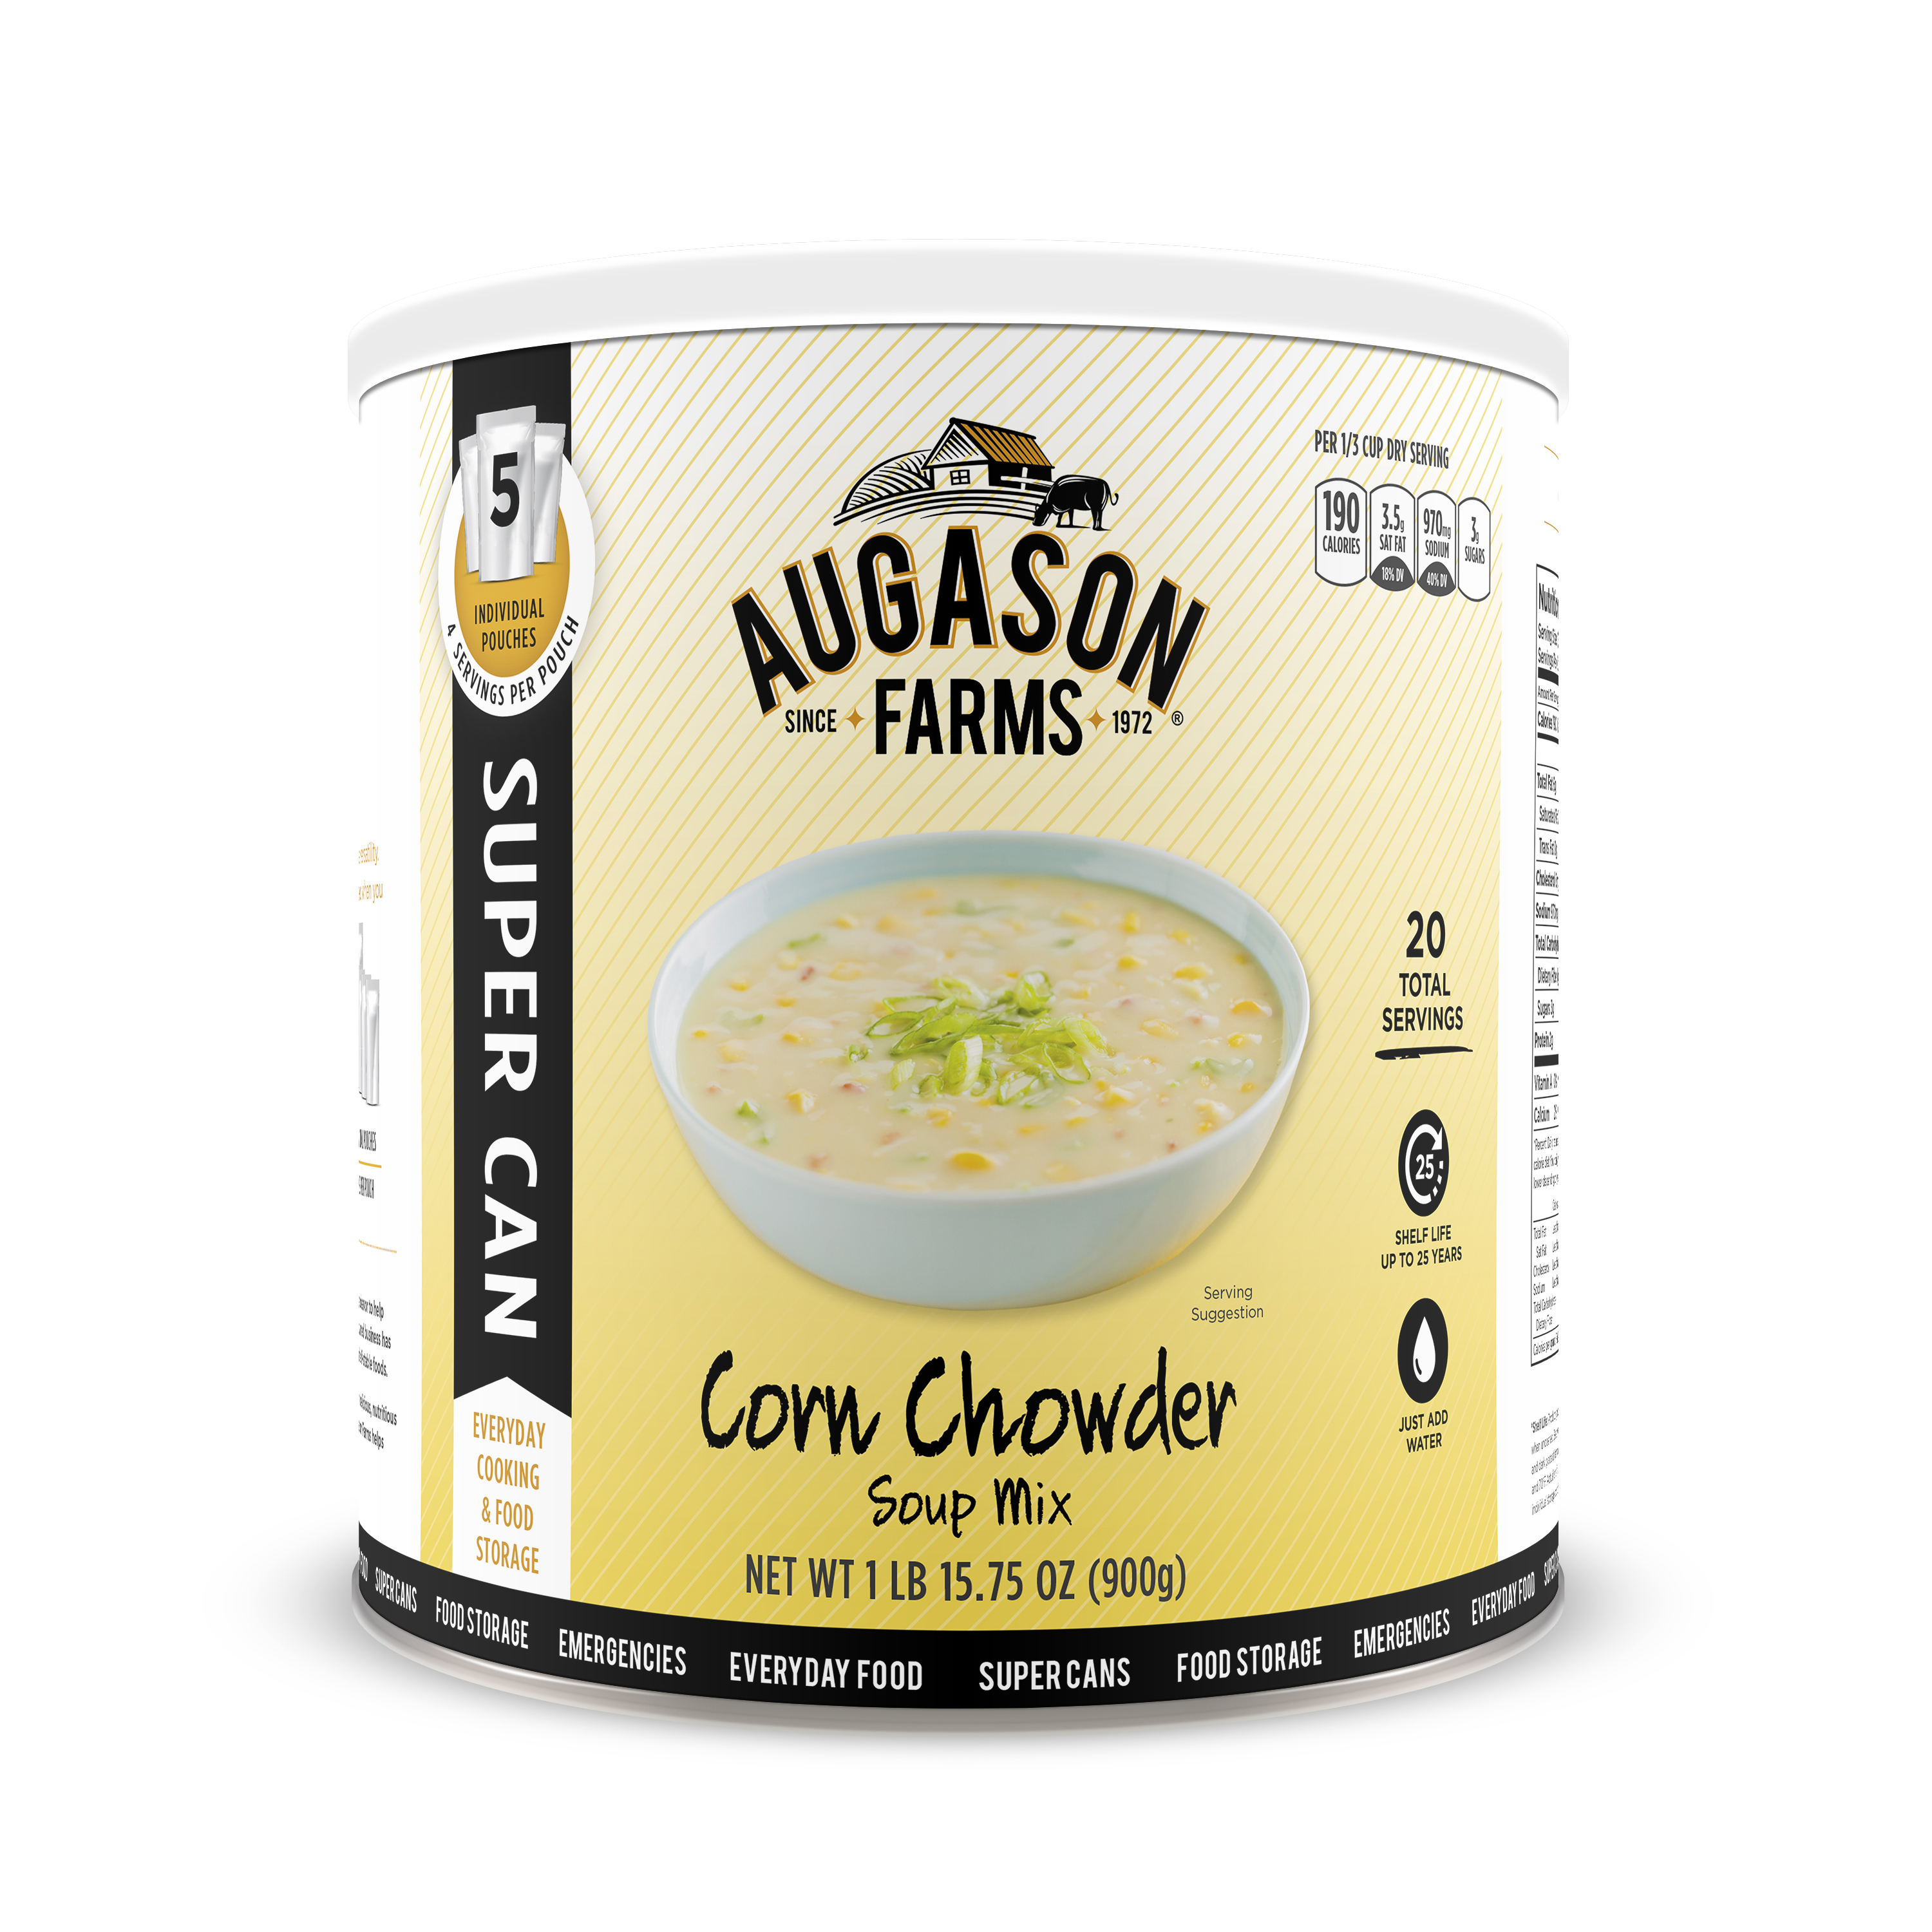 Augason Farms Corn Chowder Soup Mix 1 lb 15. 75 oz No. 10 Super Can